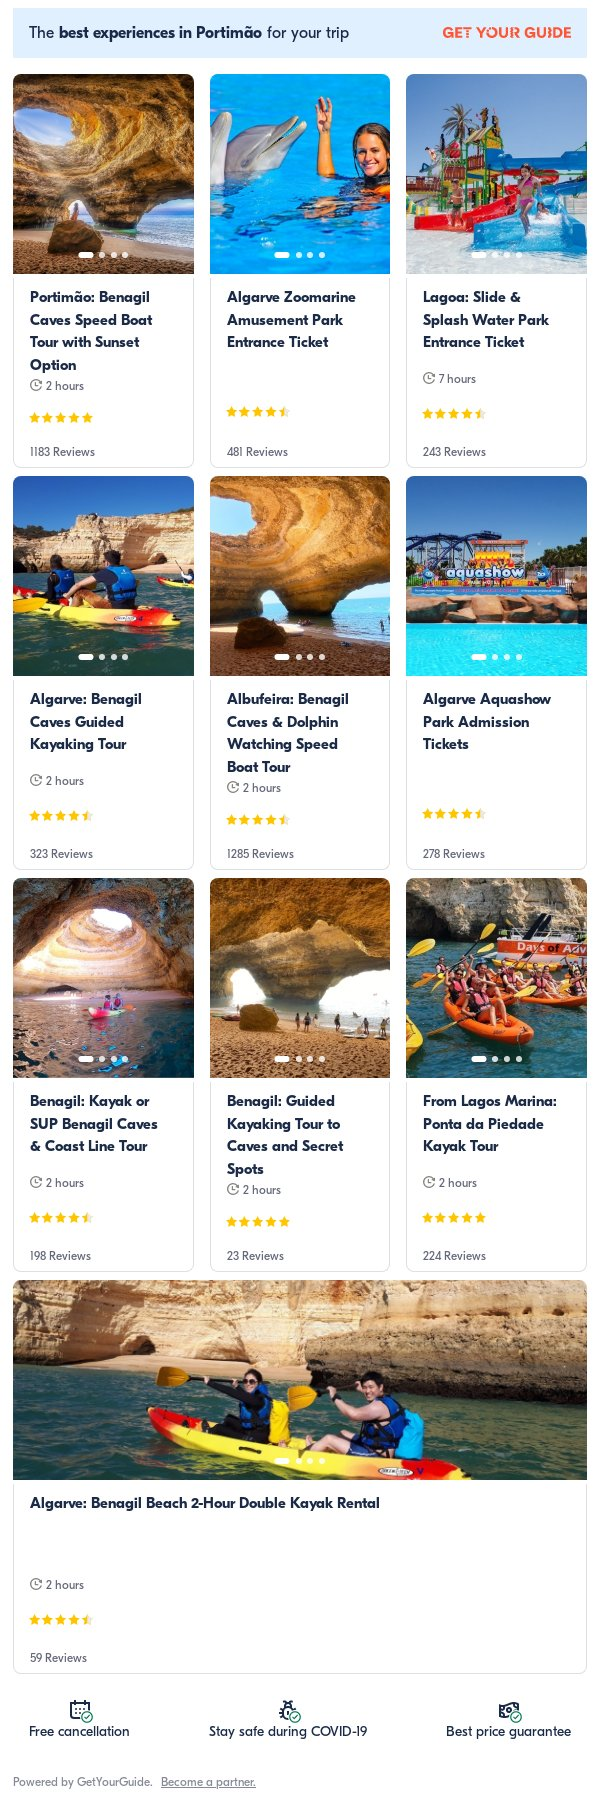 Algarve: Get Your Guide